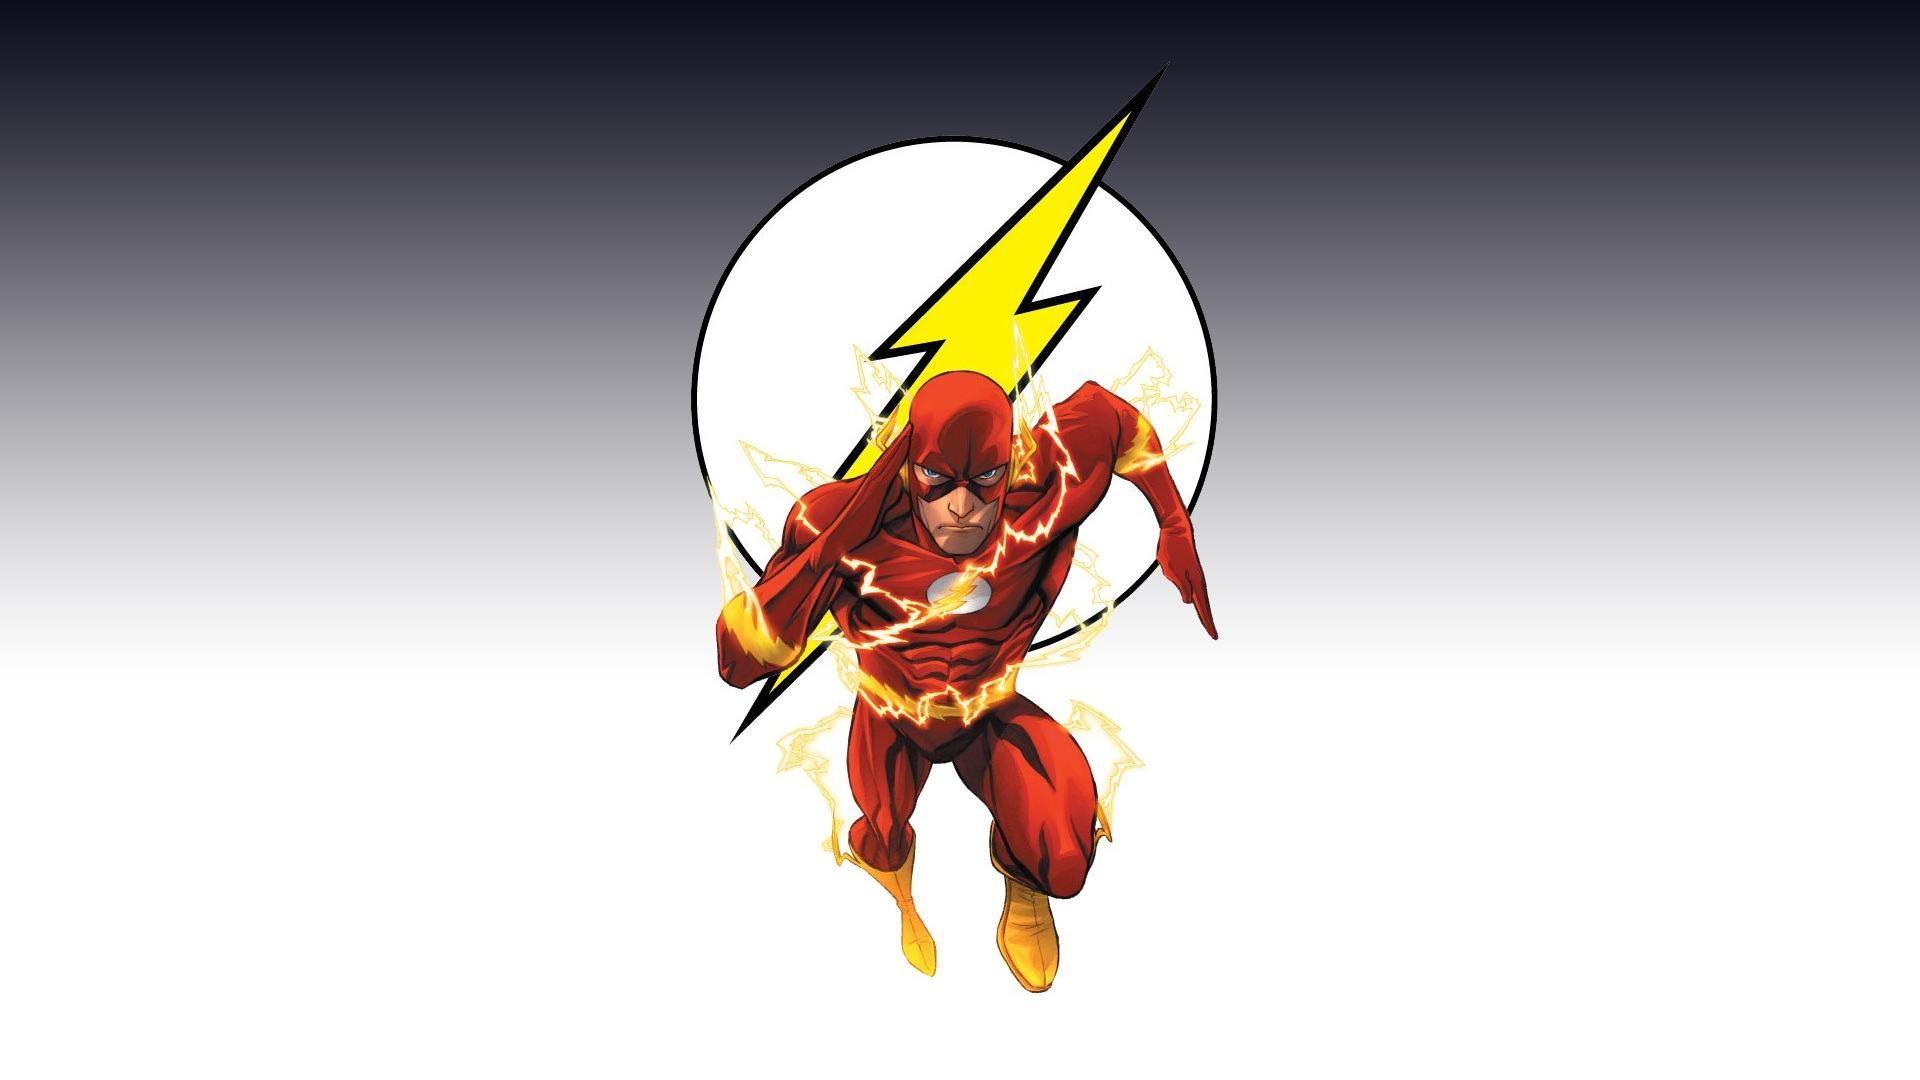 Dc comics superheroes flash comic hero wallpaper 17162 1920x1080